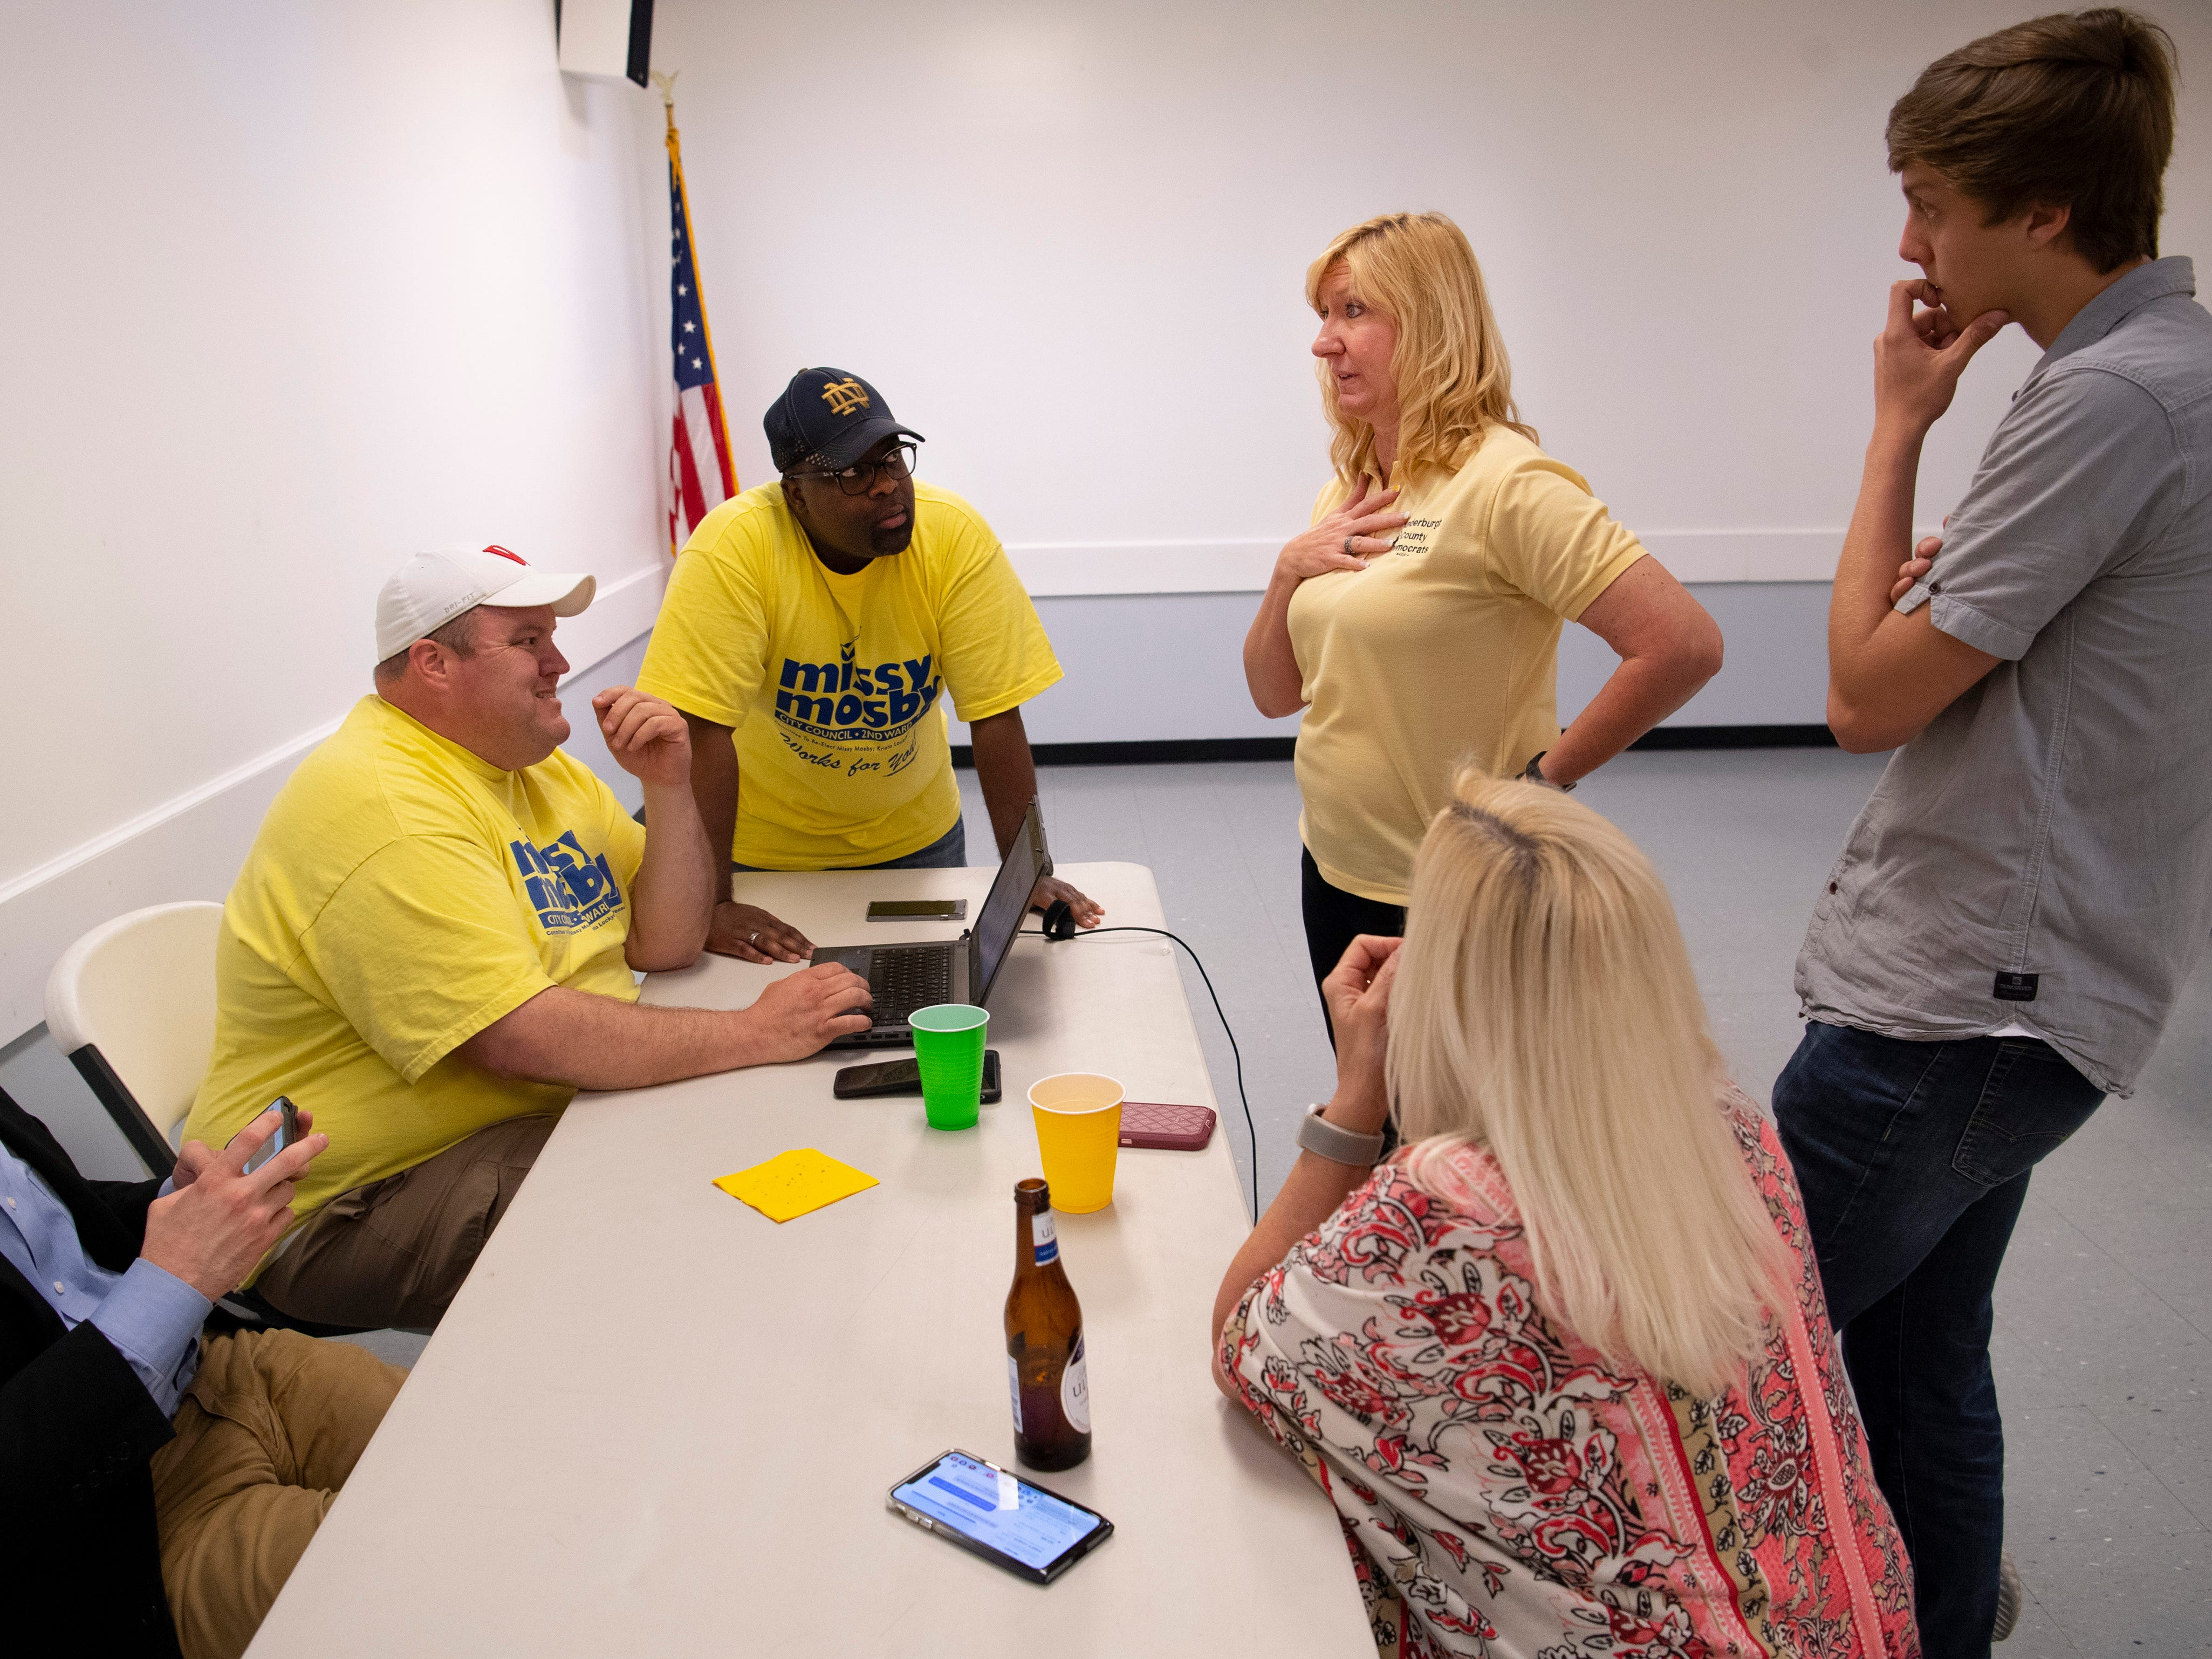 City Council member Missy Mosby (D), second right, awaits the latest vote tally from the Evansville primary election at the Fraternal Order of Police Tuesday night. Mosby won the 2nd Ward contest and will face Republican Natalie Rascher in the fall general election.